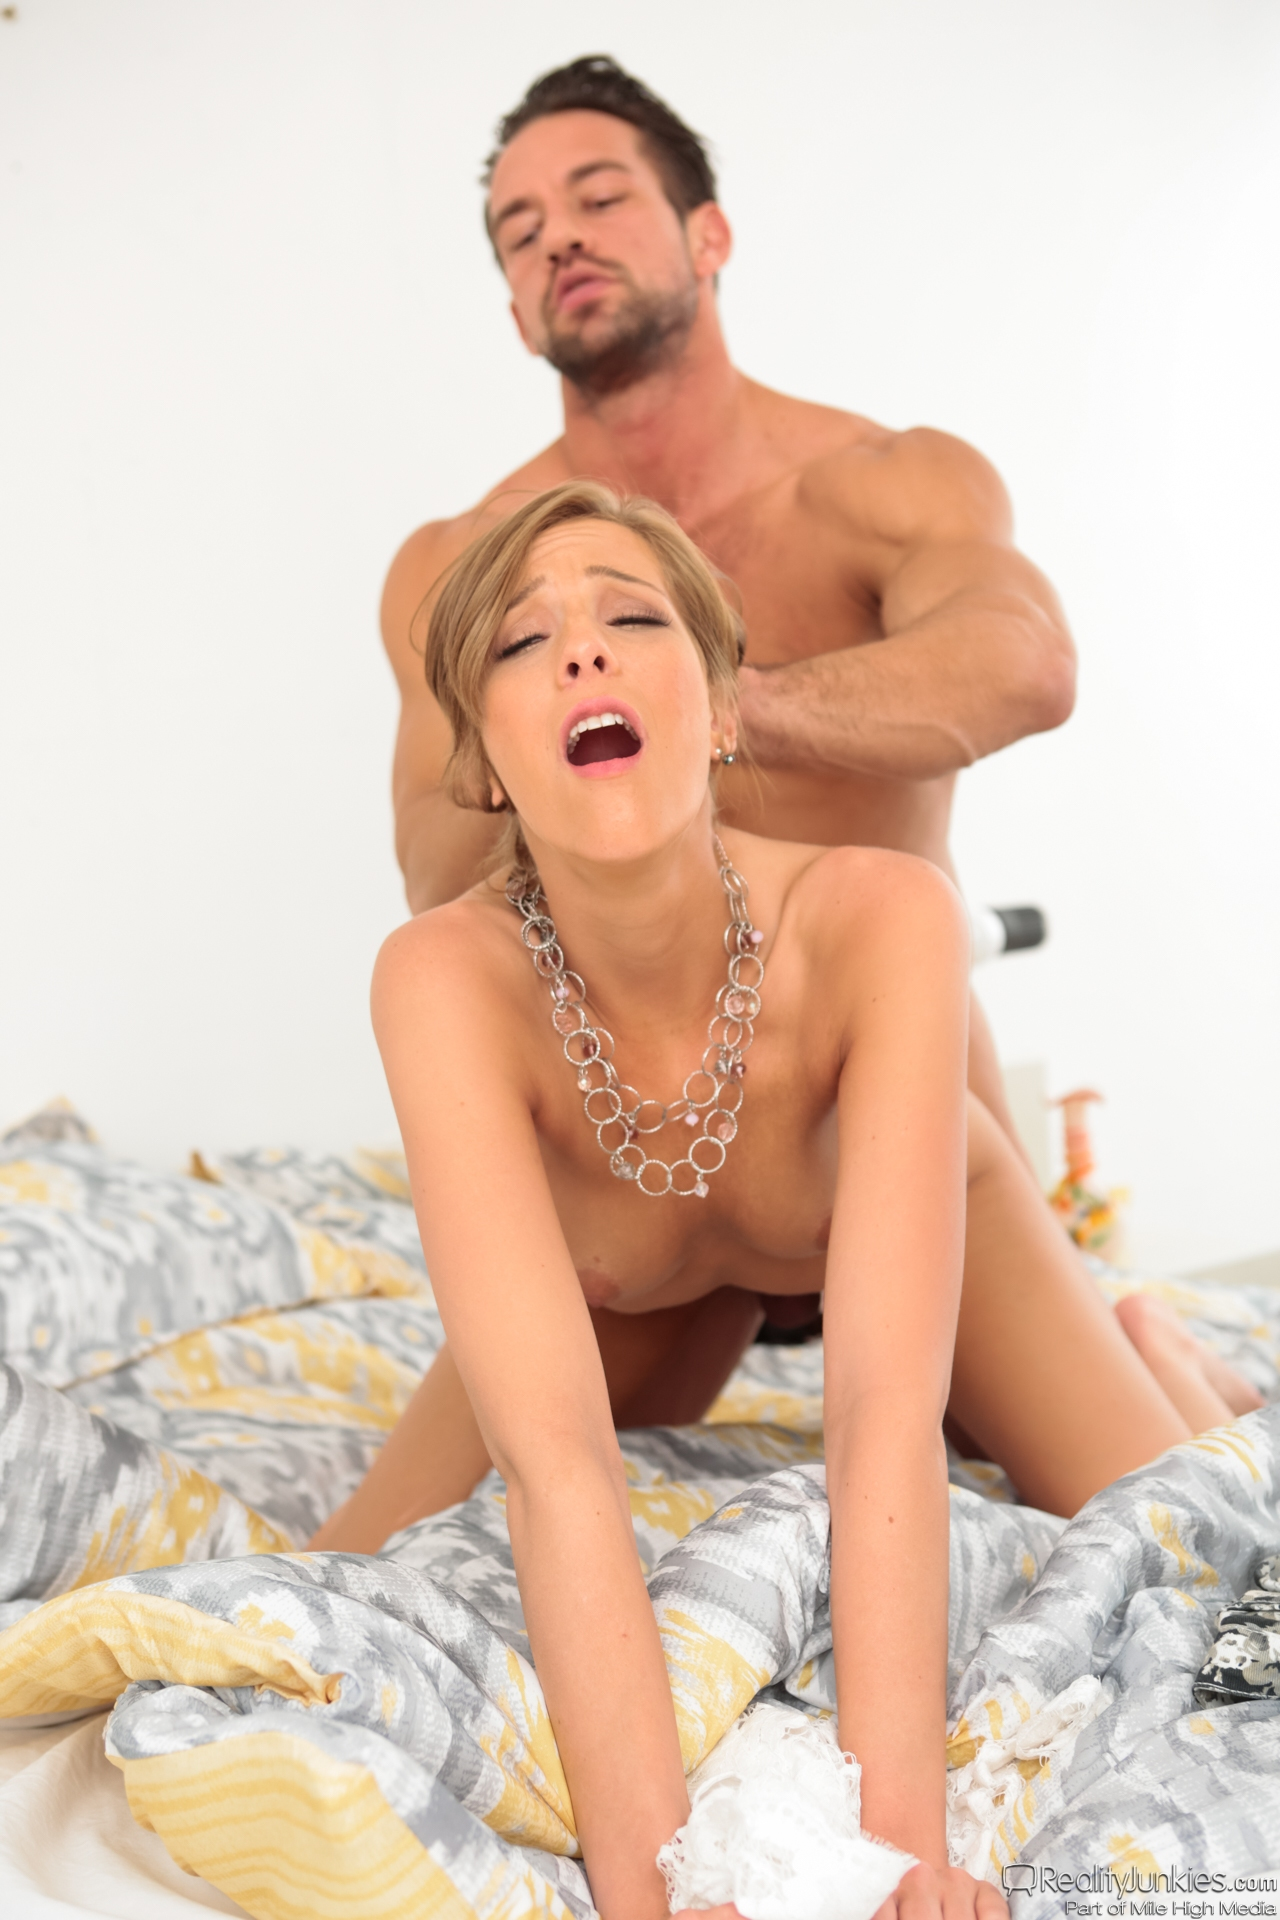 girls sex full hd-excellent porn